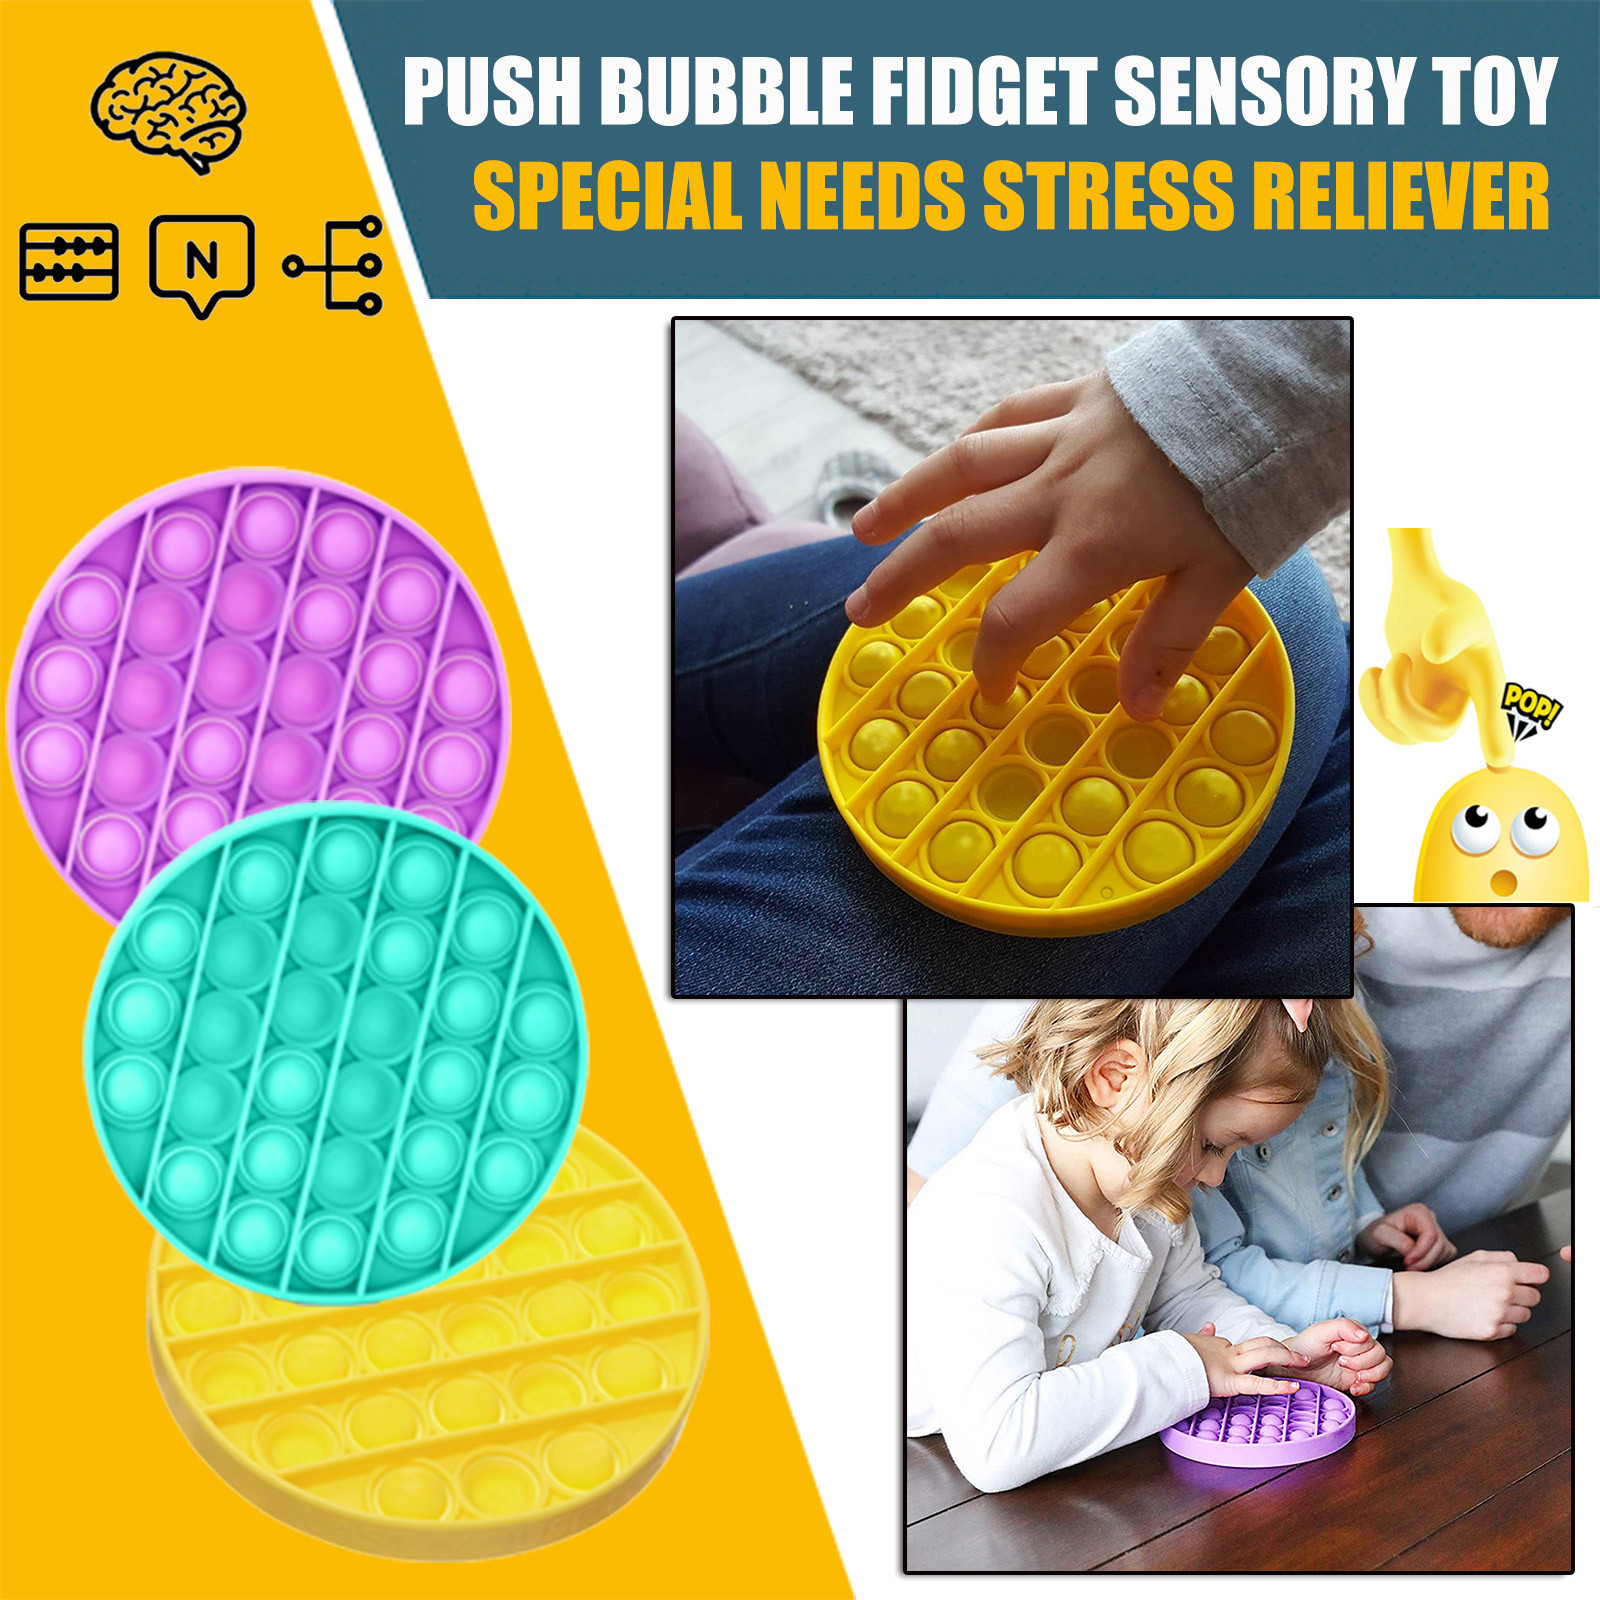 Fidget Toy Autism-Stress Funny Gift Bubble-Sensory Relief-Reliever Push-Pop Silent Classroom